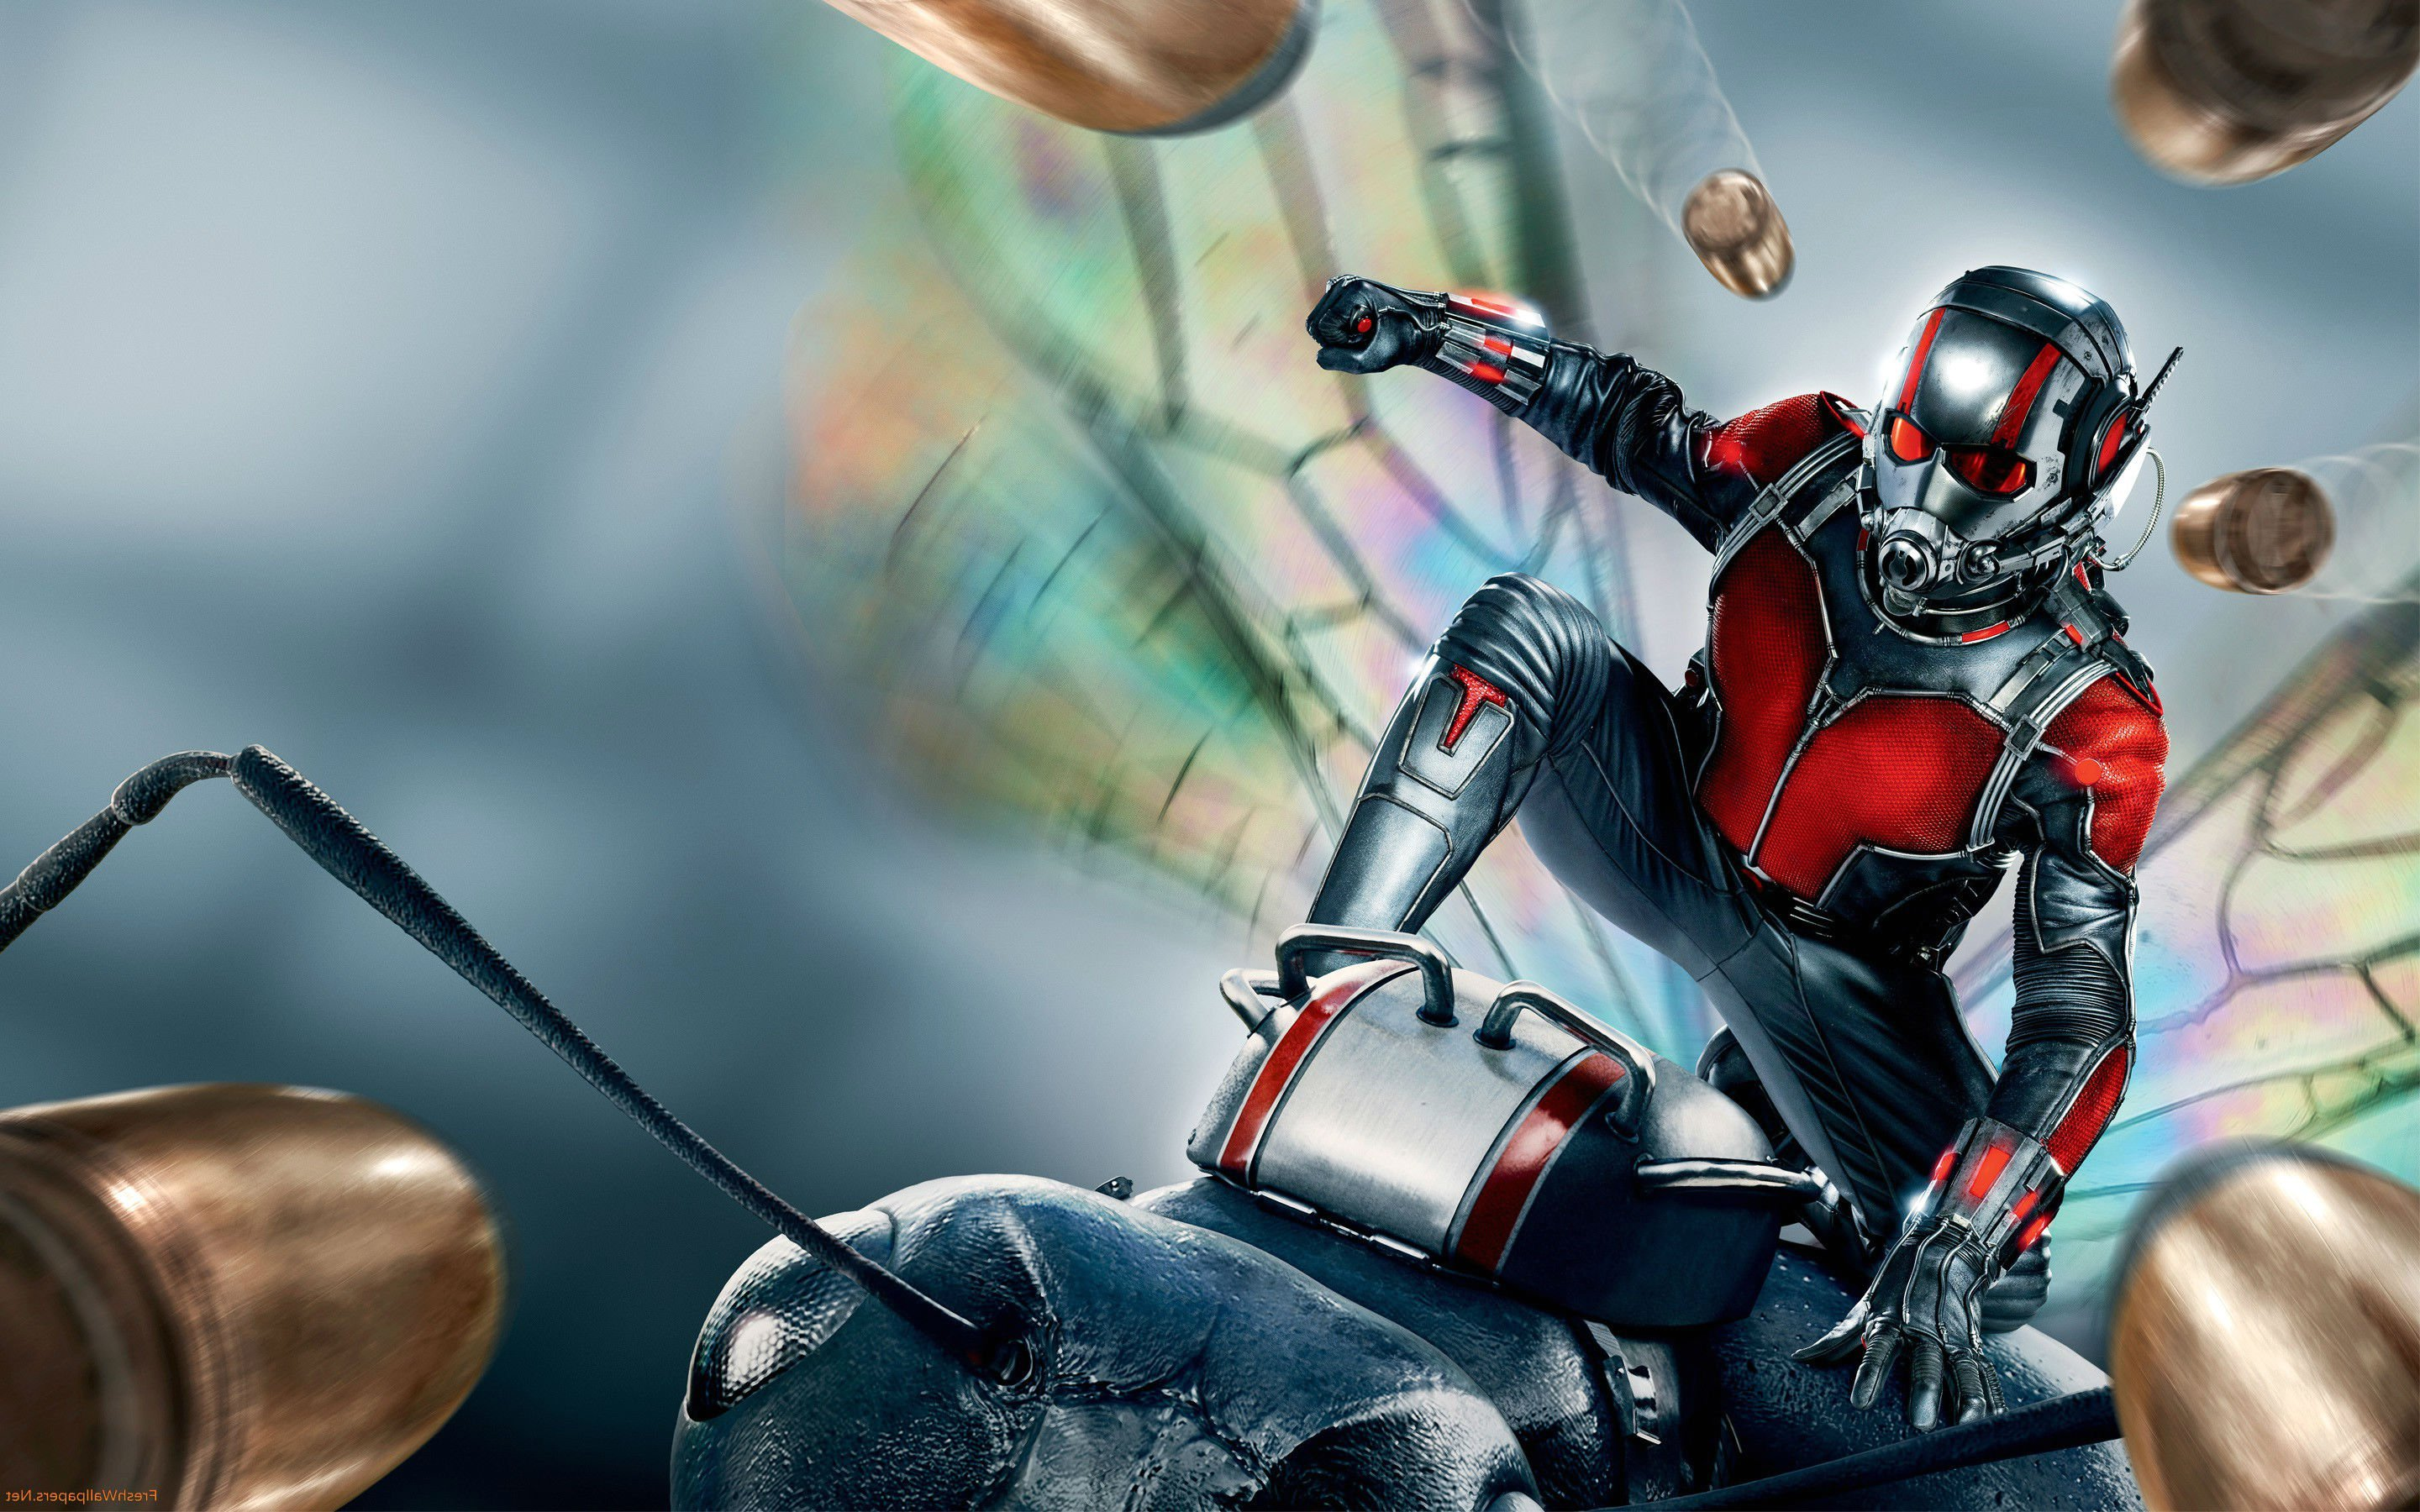 1antman warrior ant man wallpaper 2880x1800 728370 WallpaperUP 2880x1800